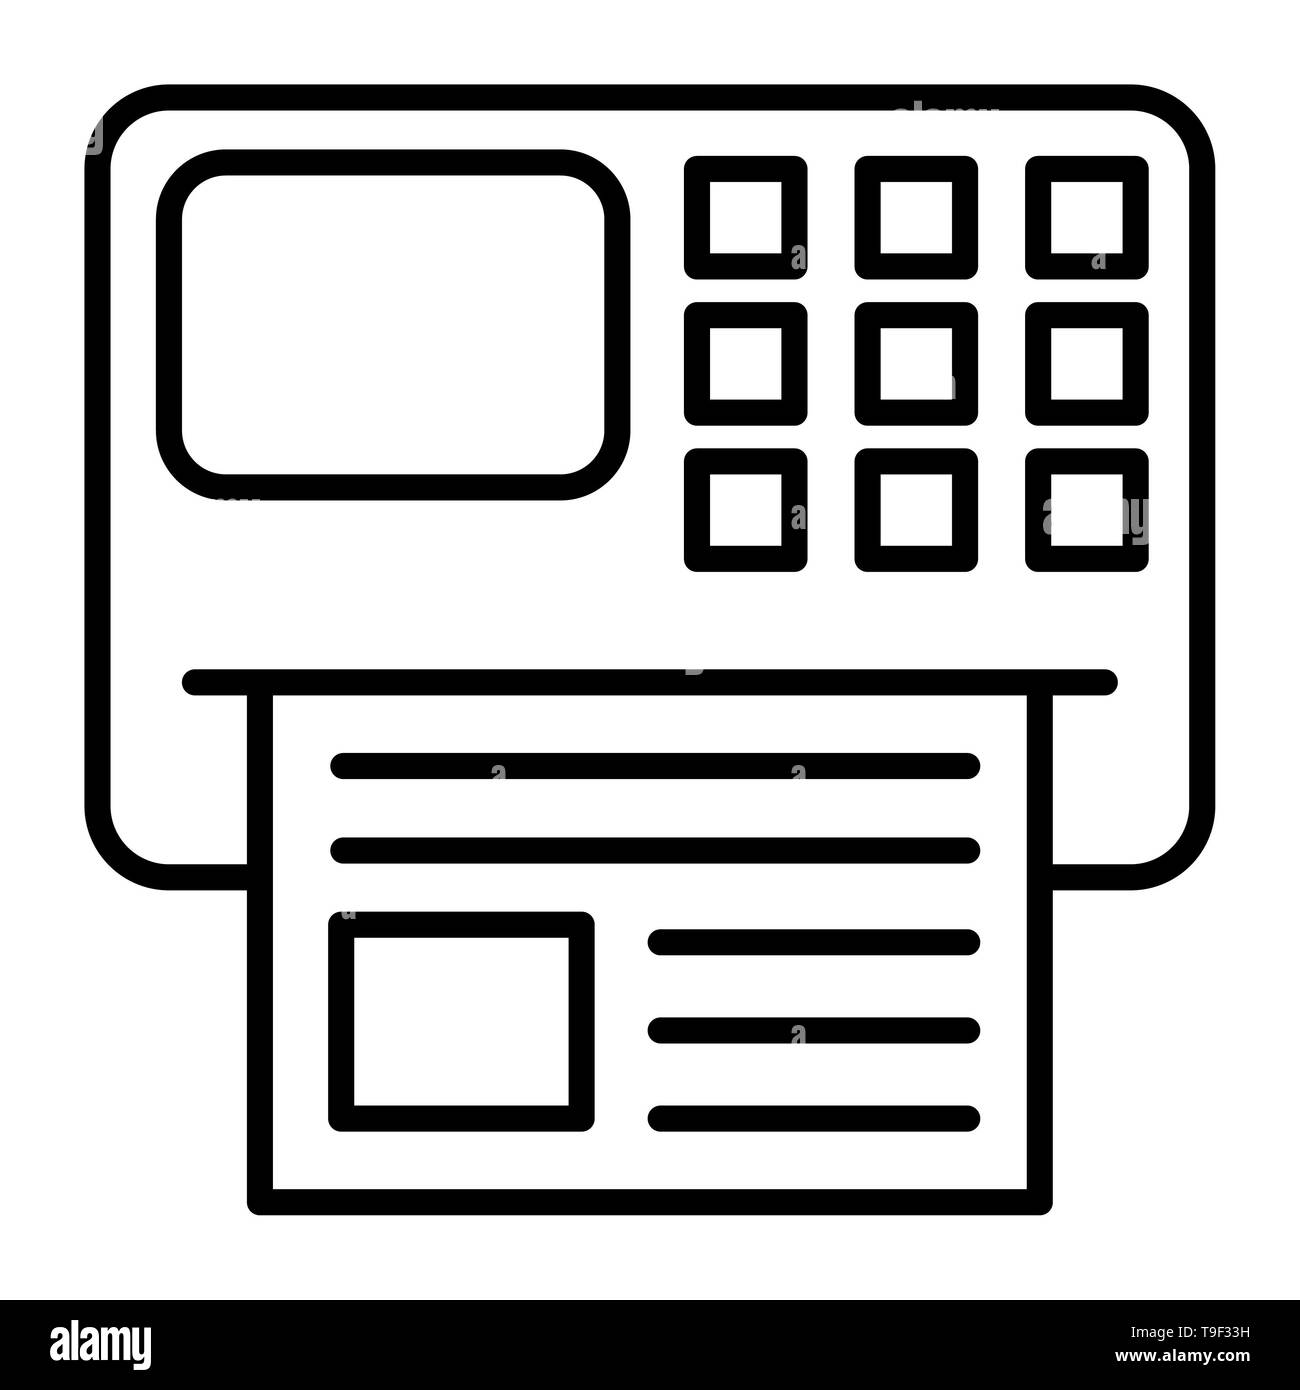 Fax Icon Vector Illustration Business Outline Stock Photo Alamy You can use our free online tool to generate css sprites. alamy